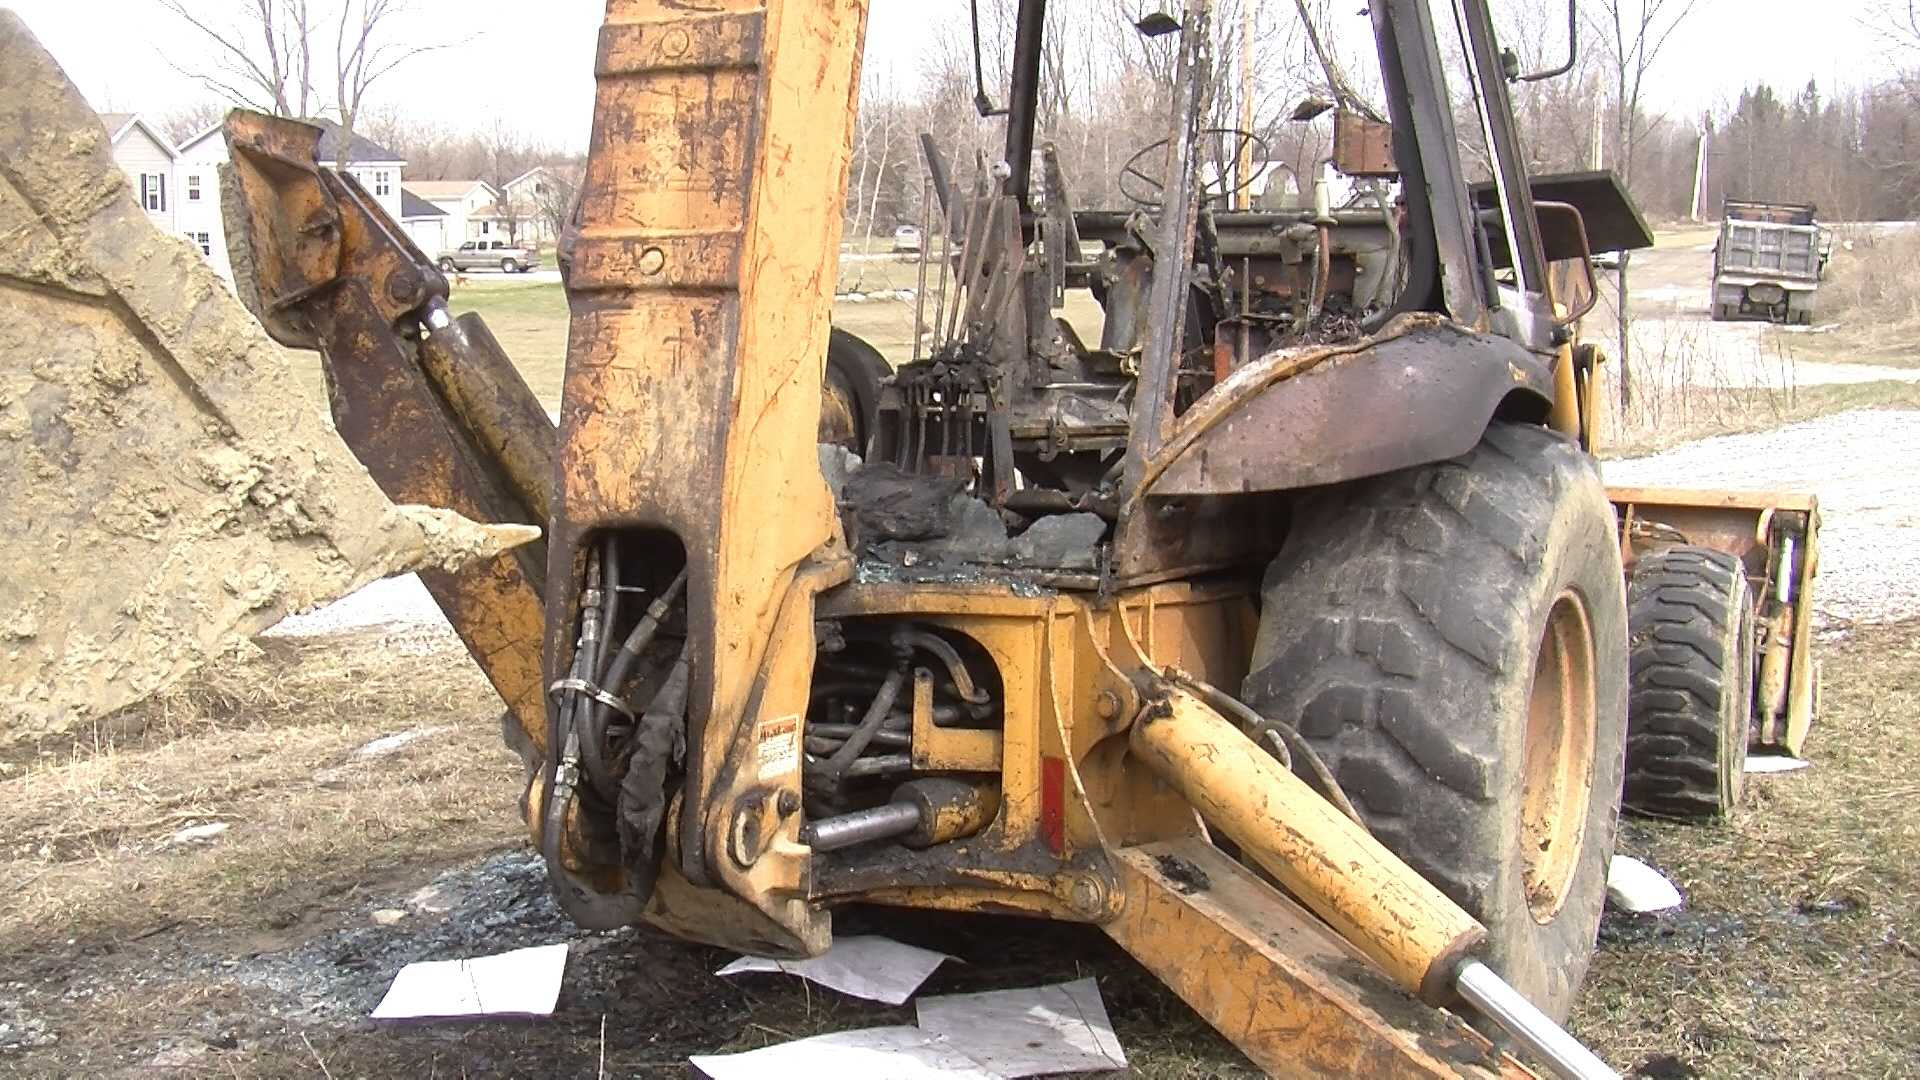 Heavy construction equipment destroyed in arson fire